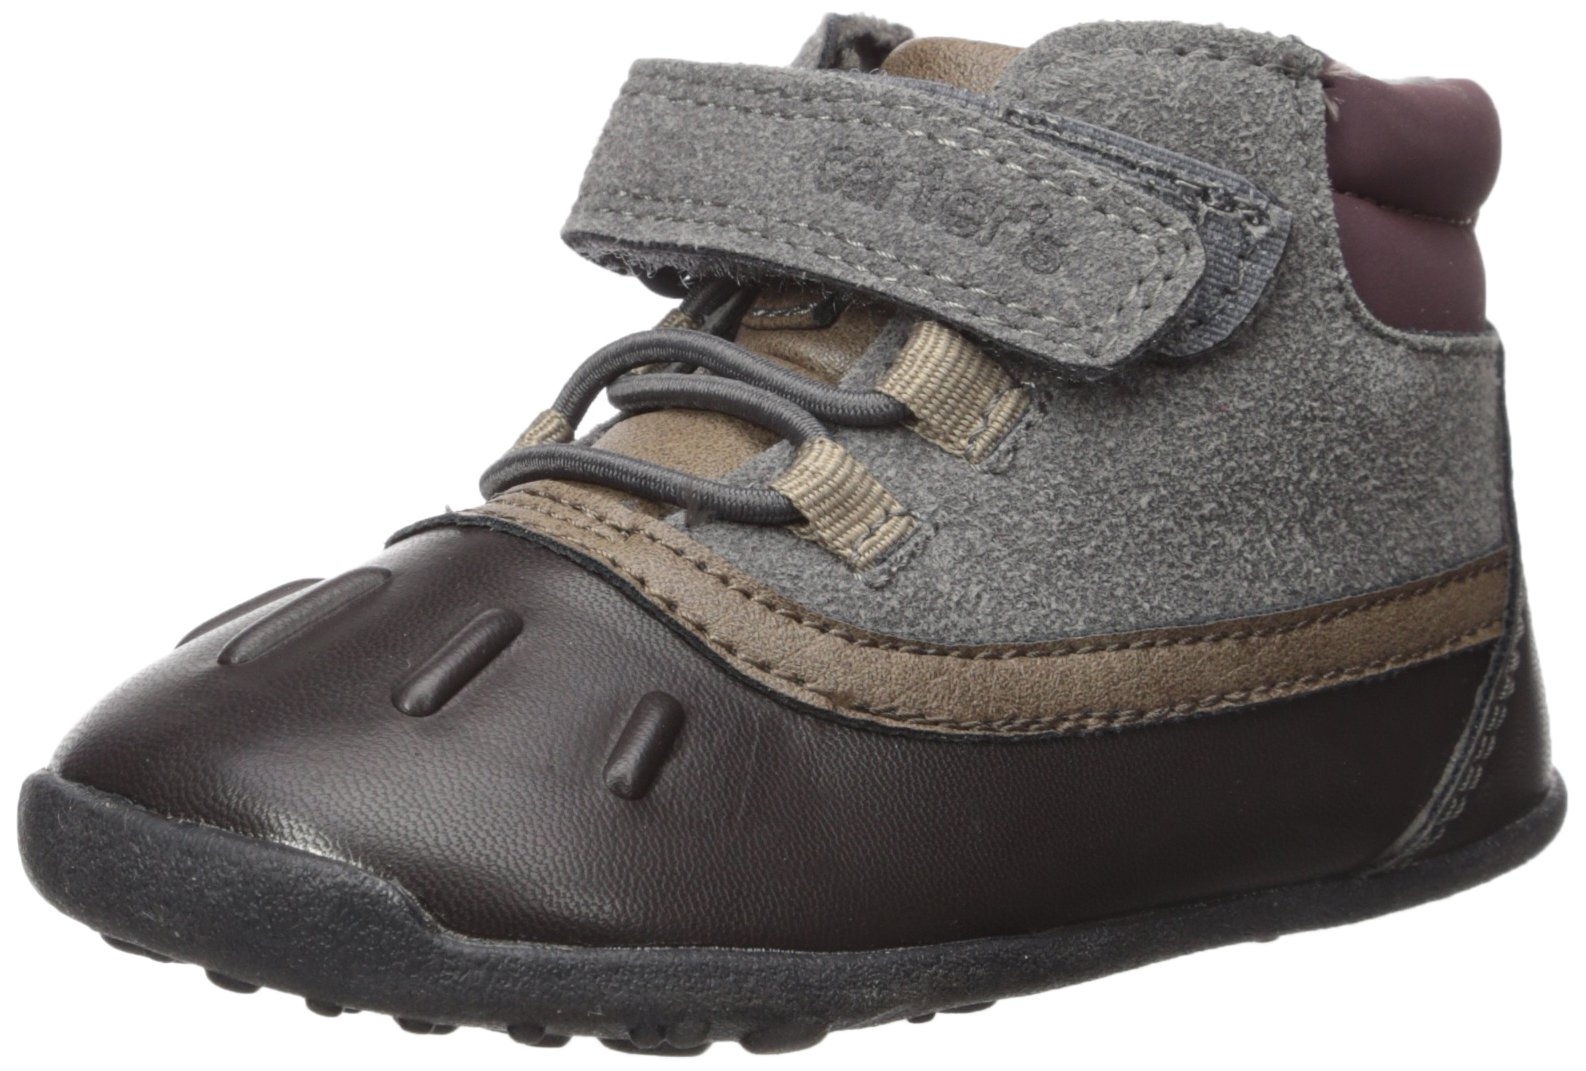 Carter's Every Step Boys' Cater's Every Step Stage 3 Walk, Jonah-WB Fashion Boot, Grey/Dark Brown, 6.0 M US (12-18 Months)